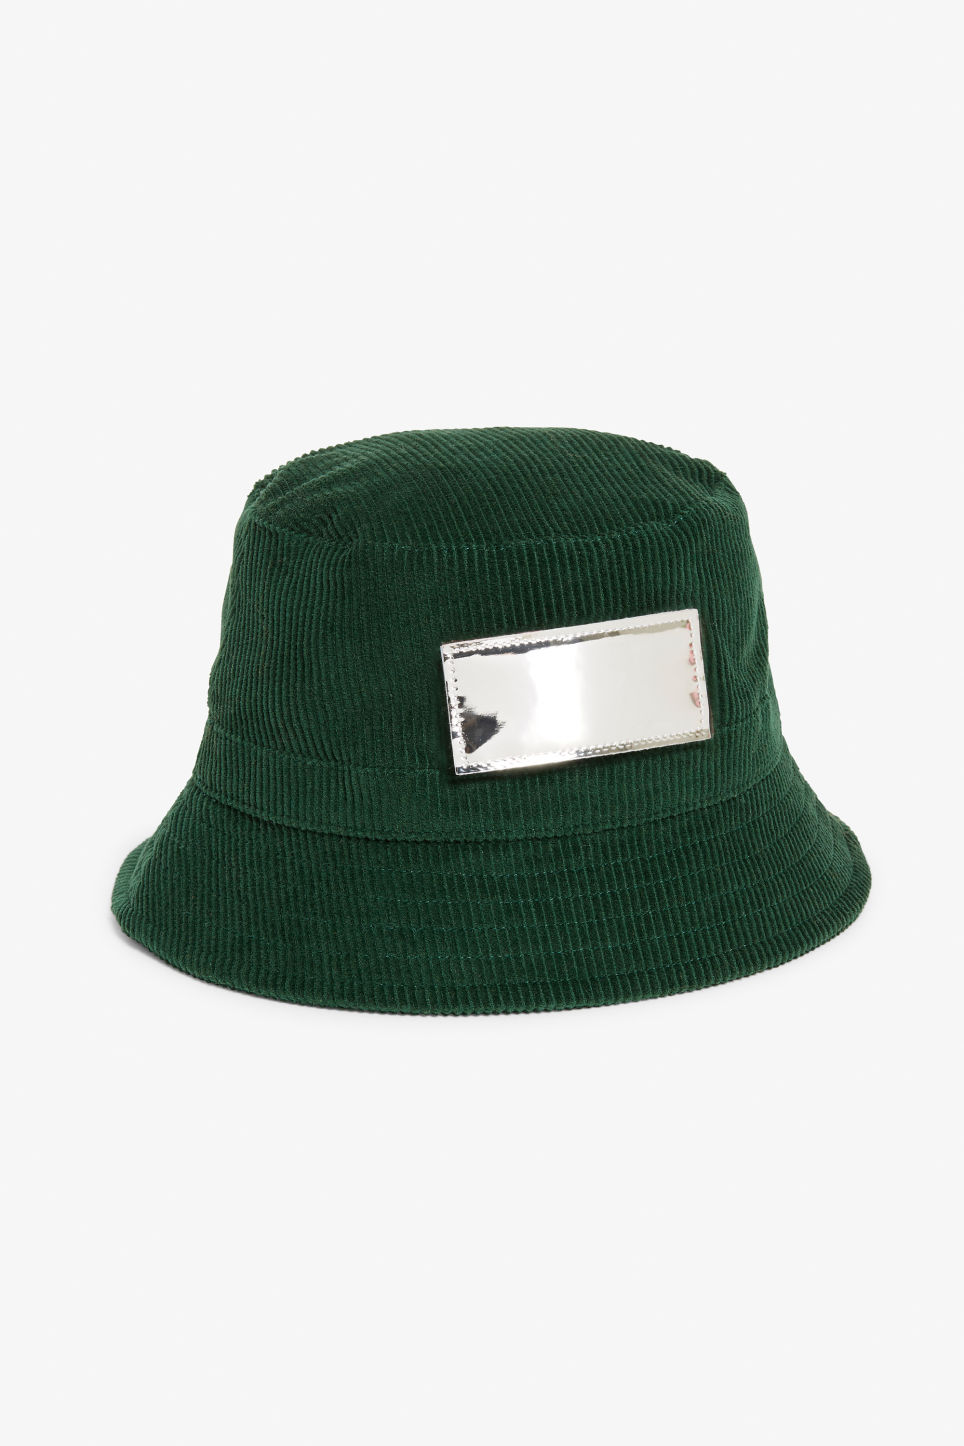 Detailed image of Monki corduroy hat in green